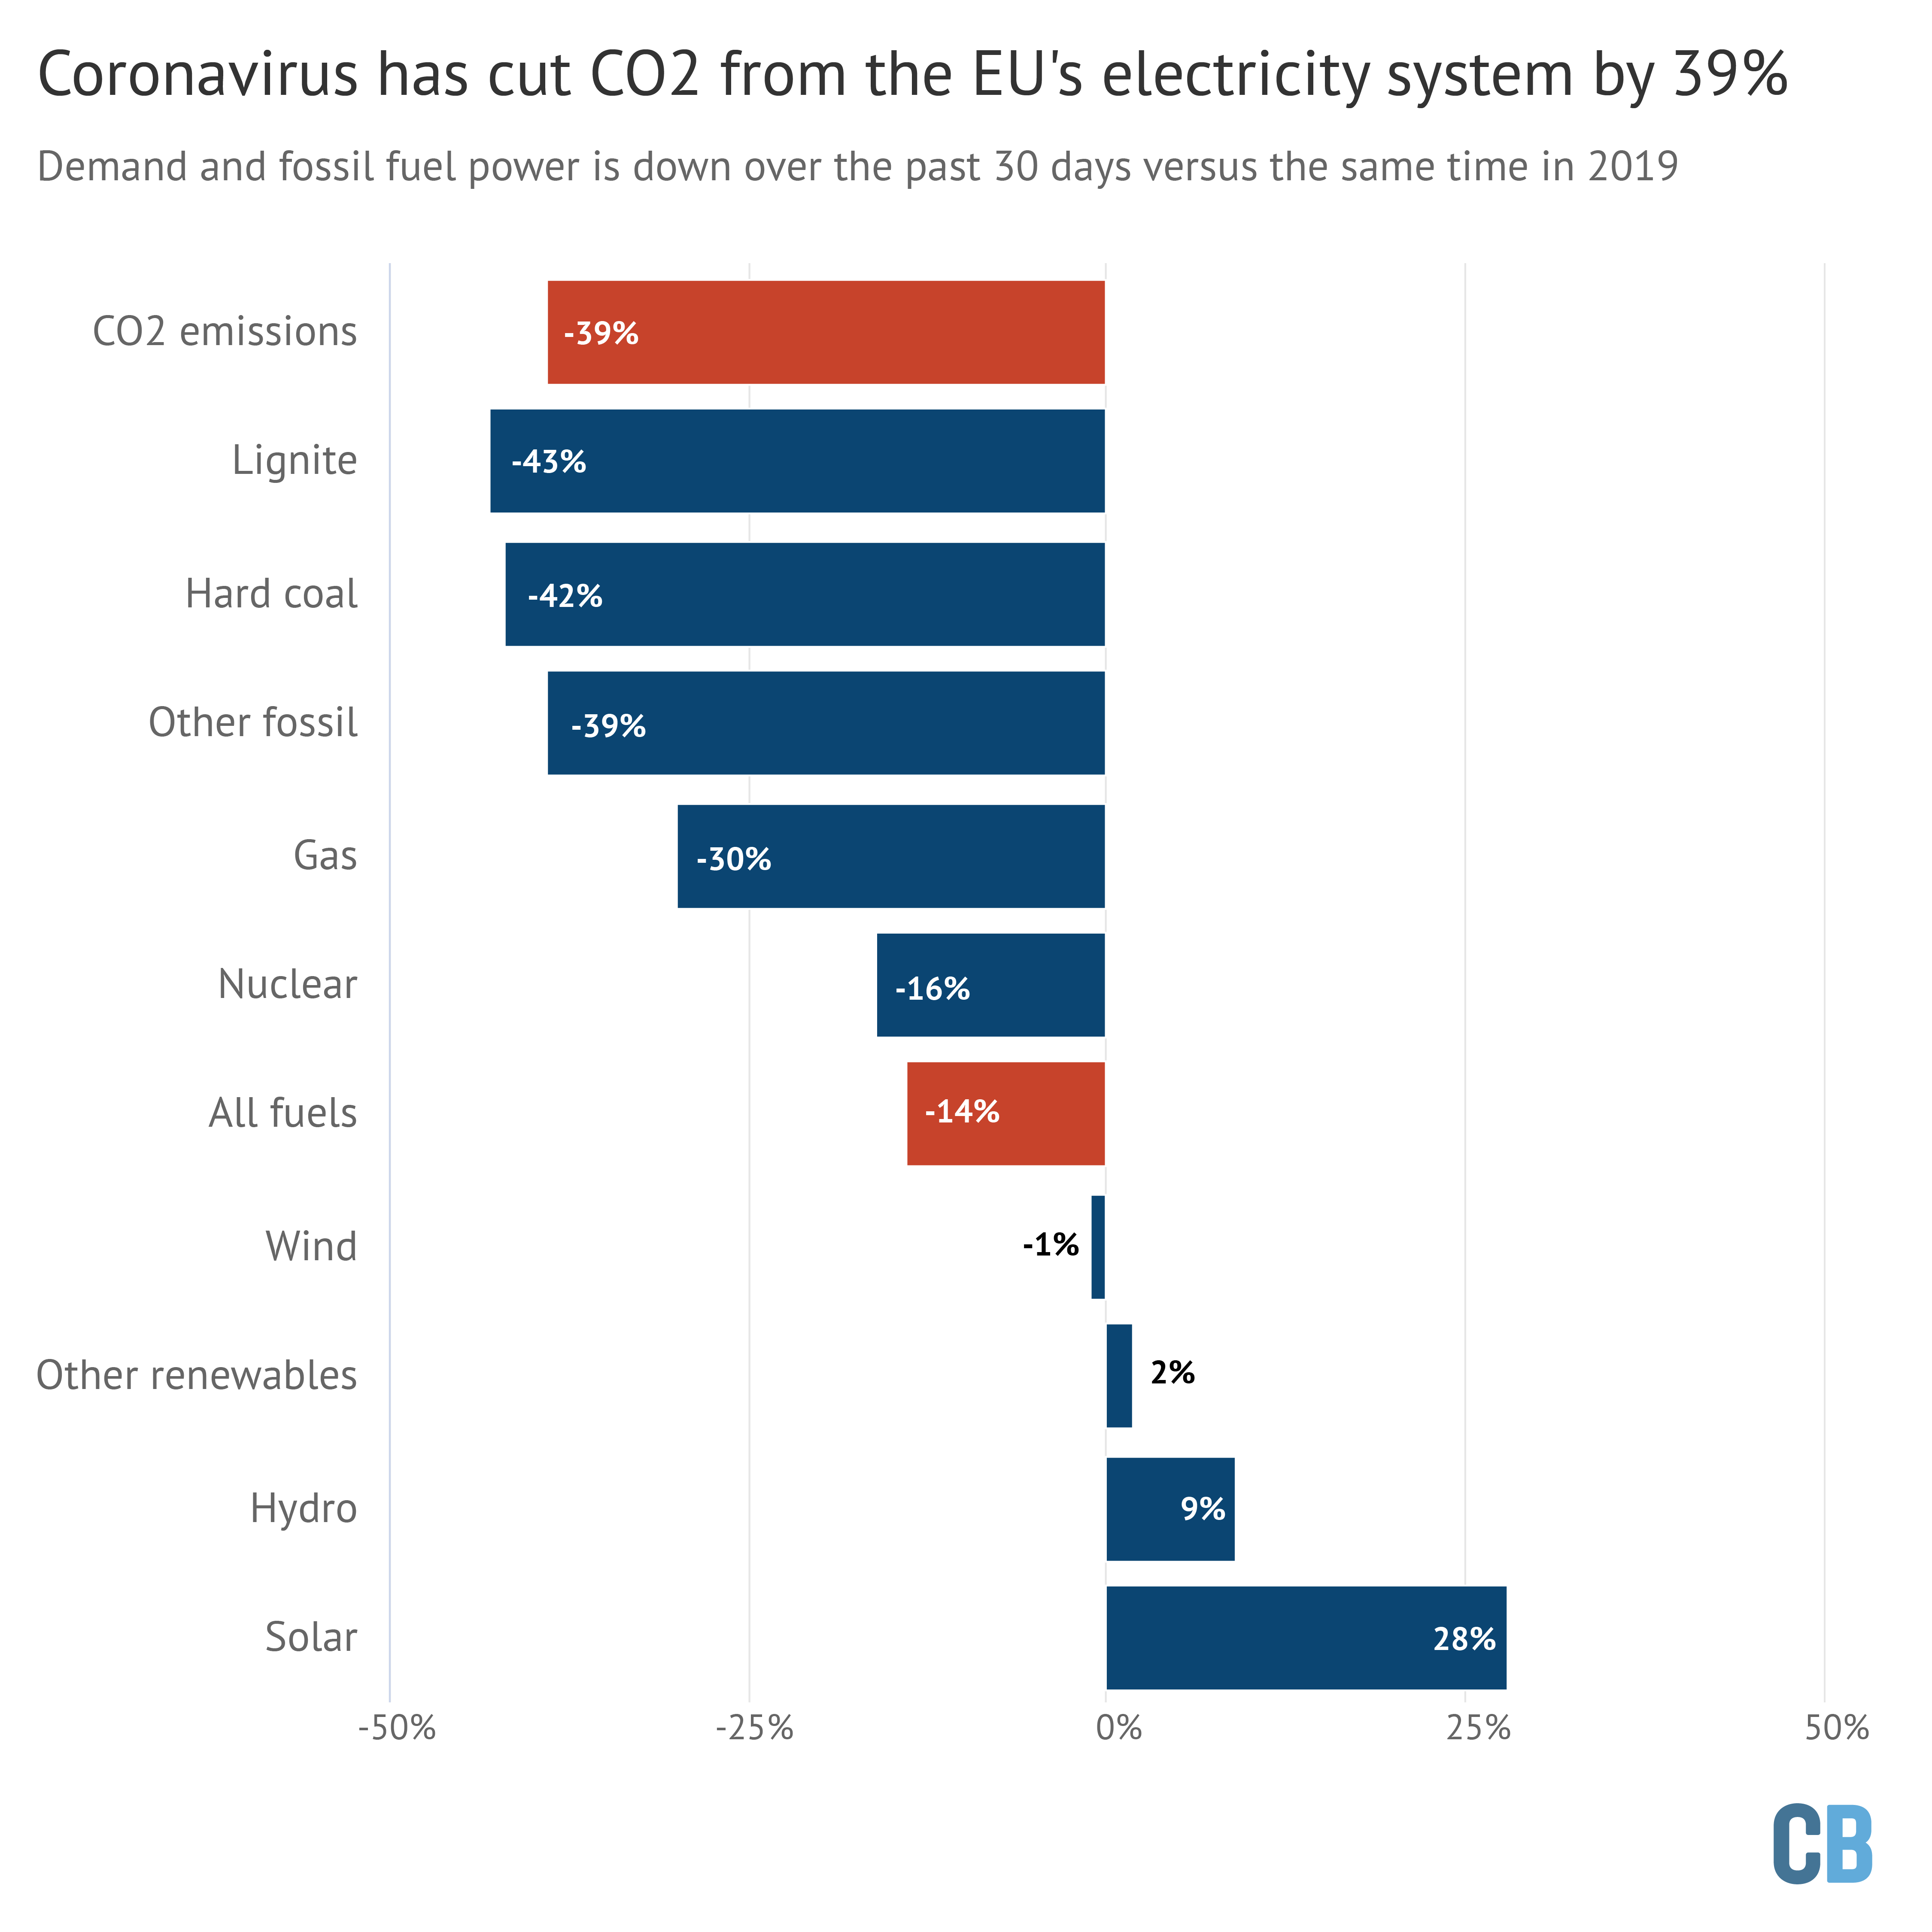 Change in electricity output and CO2 emissions for the EU27 and UK from 28th March to 26th April compared with the same period in 2019. Changes for each fuel are shown in blue, with the overall reduction in demand and CO2 emissions is in red. Source: Analysis of data from the European Network of Transmission System Operators for Electricity (ENTSO-E). Chart by Carbon Brief using Highcharts.